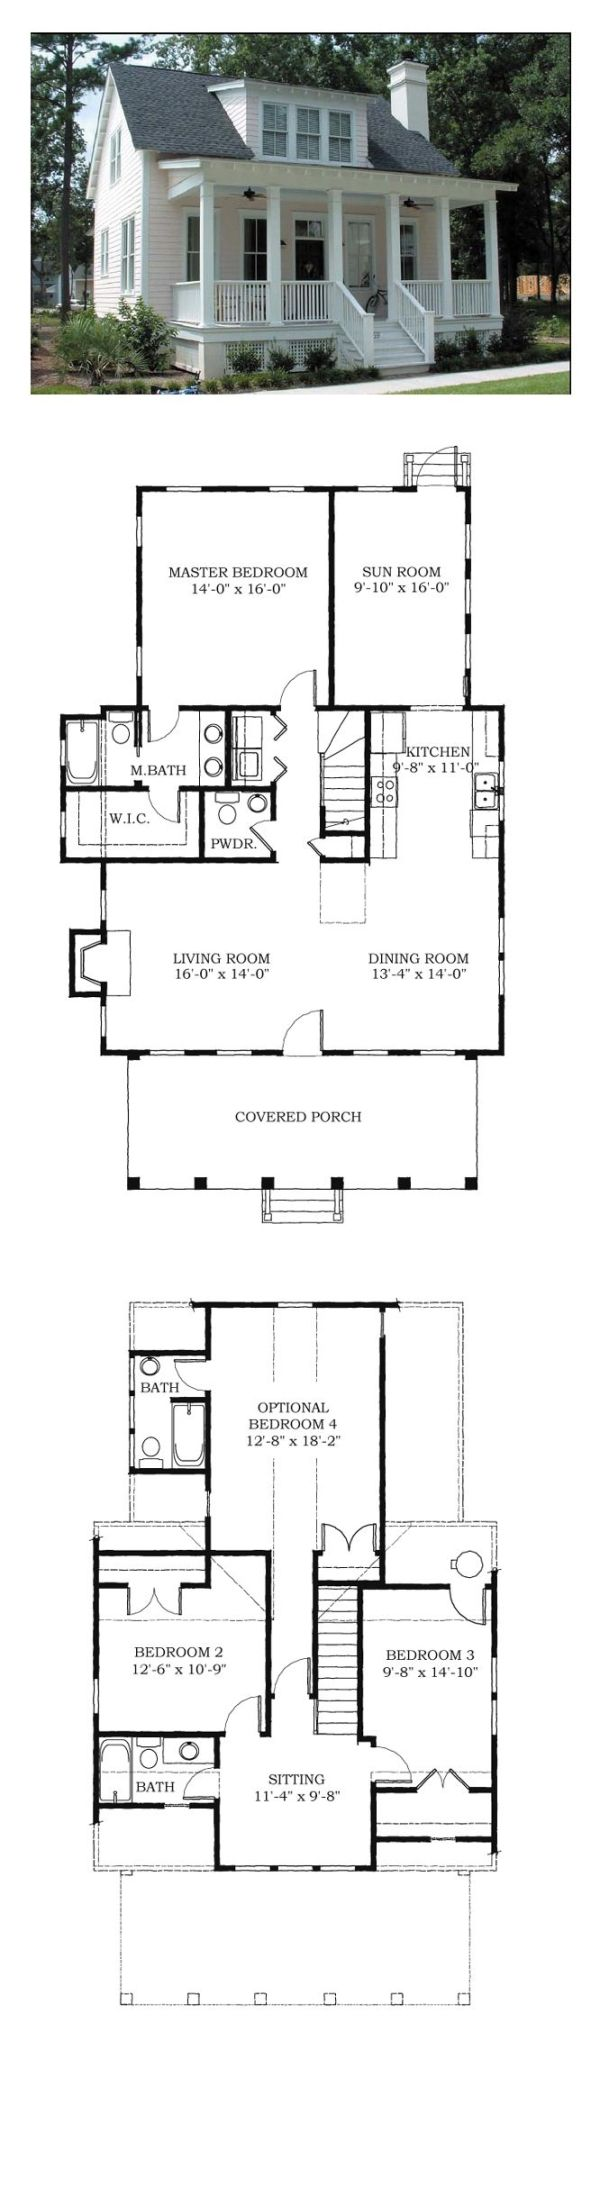 Cool House Plan Id Chp 38703 Total Living Area 1783 Sq Ft 4 Bedrooms And 3 5 Bathrooms Houseplan Carolinahome Best House Plans Small House Lake House